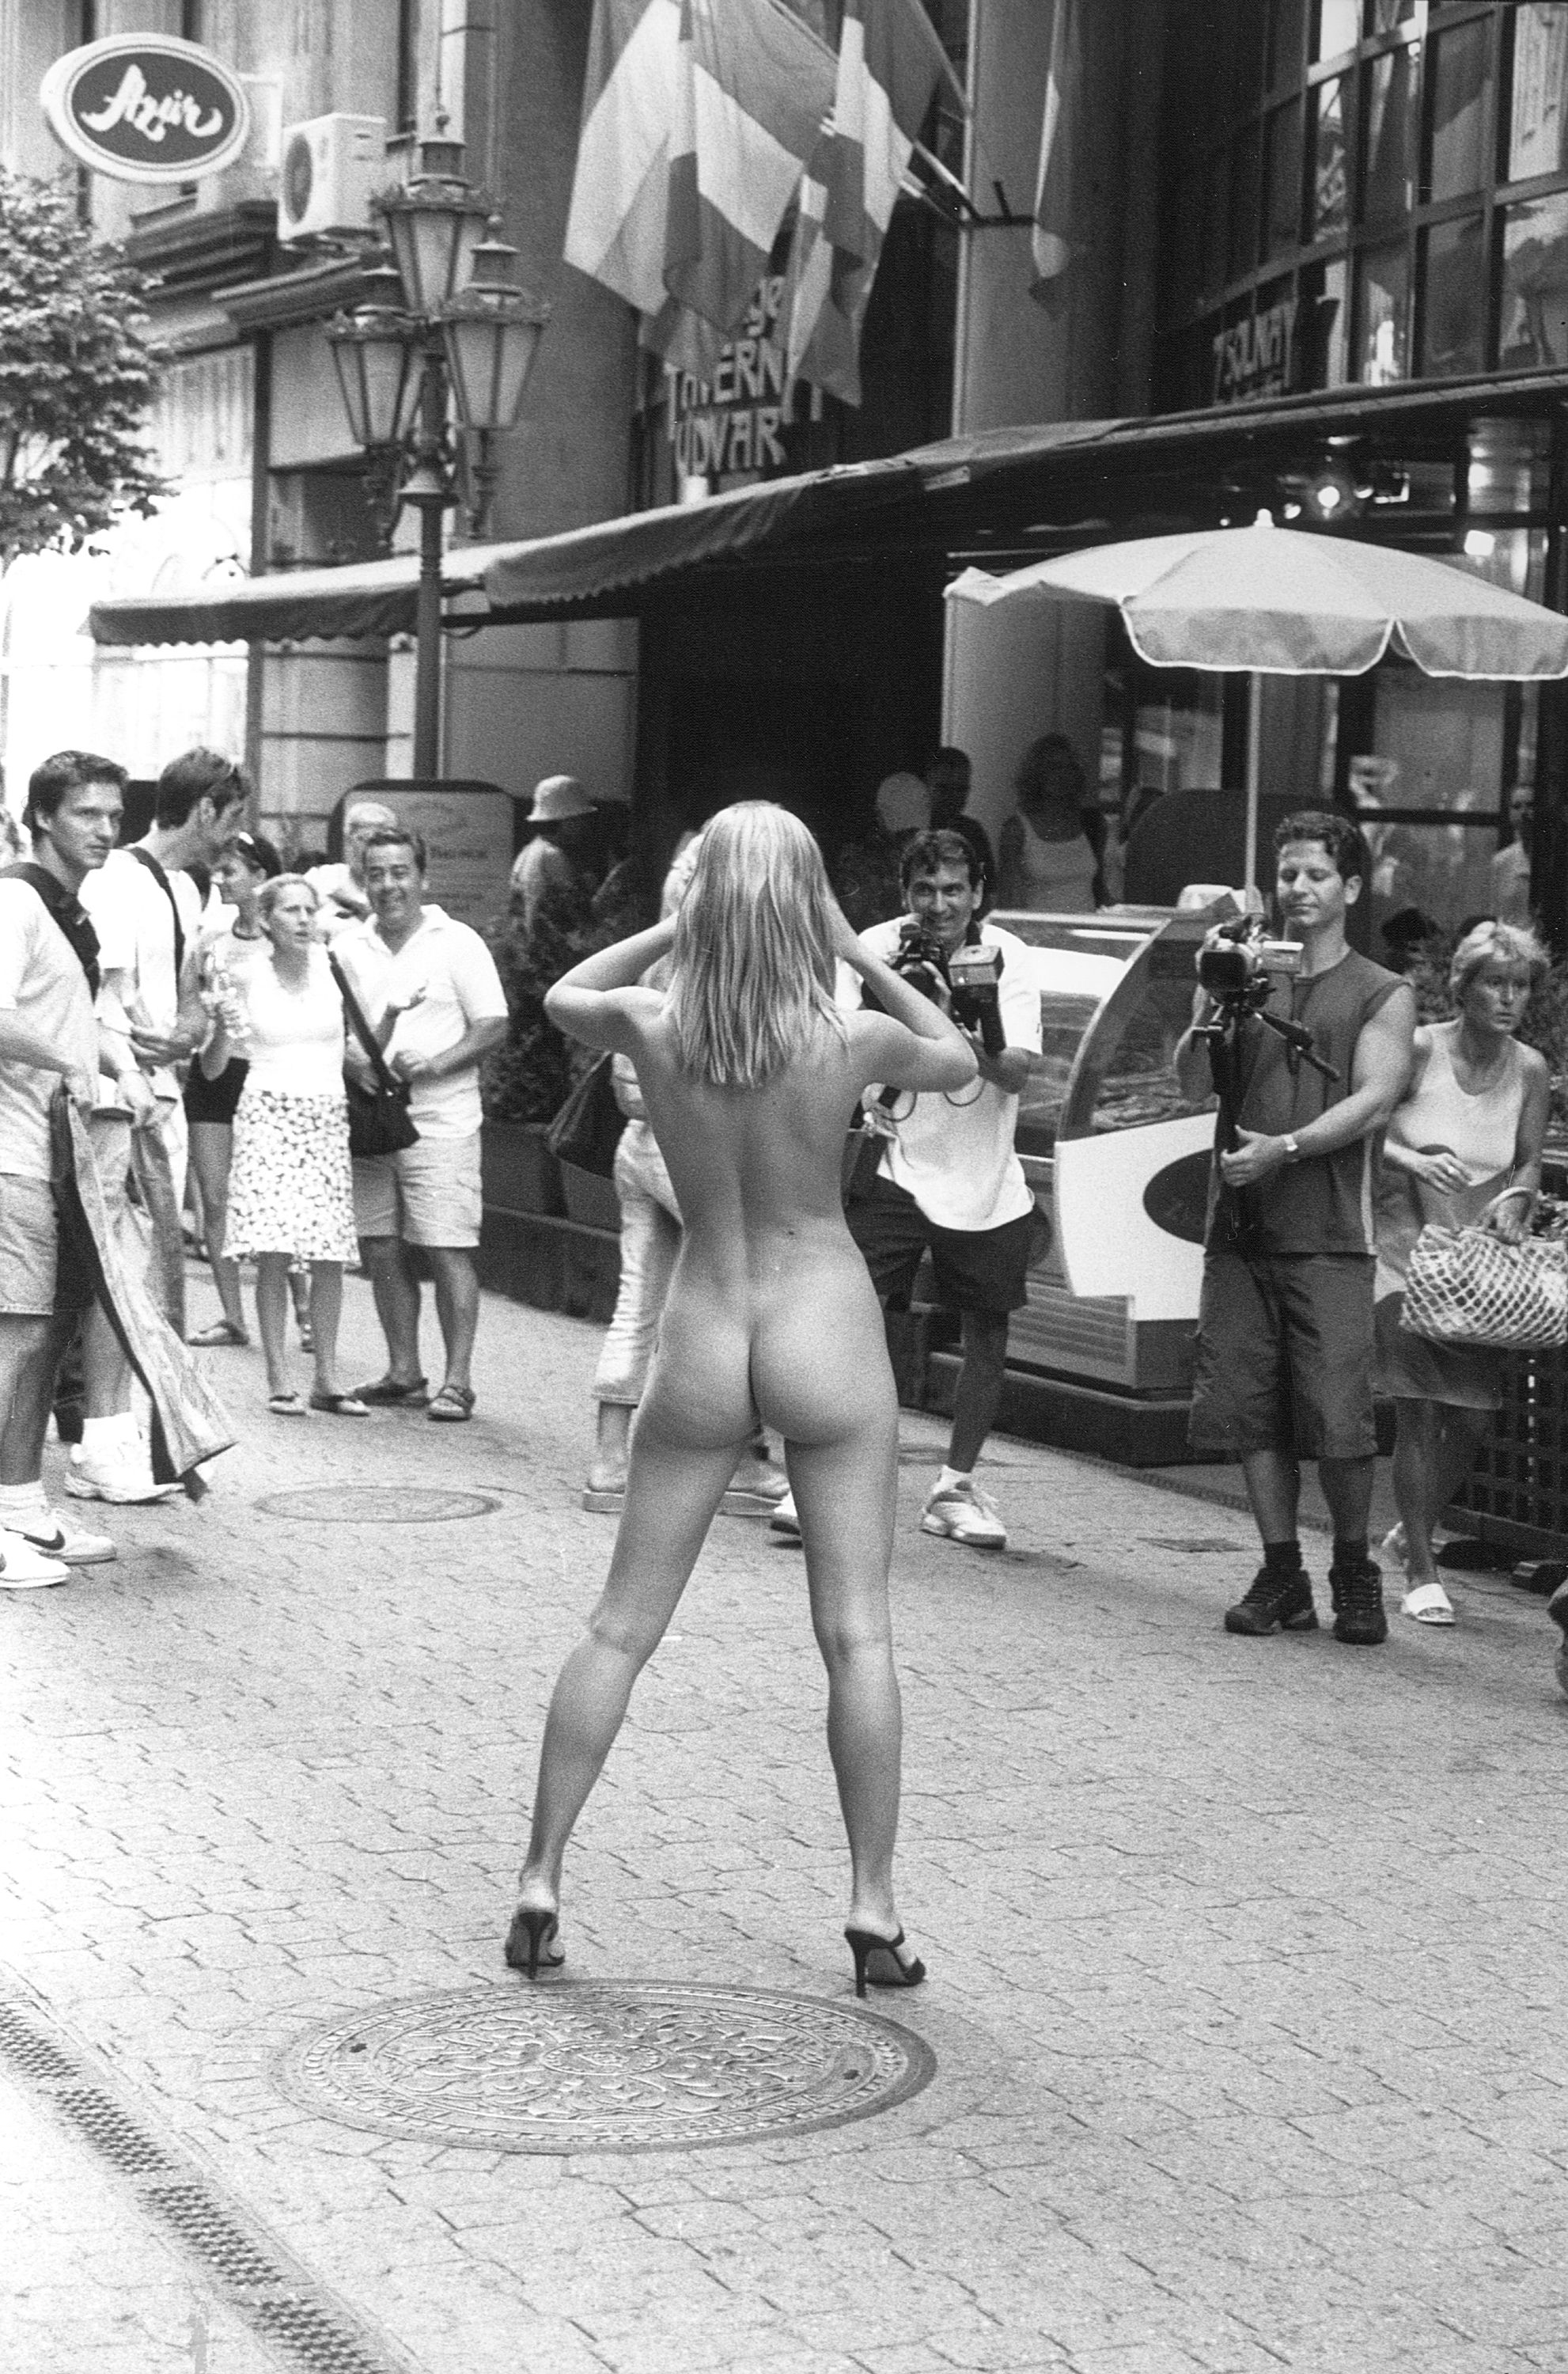 Nude Women On The Street